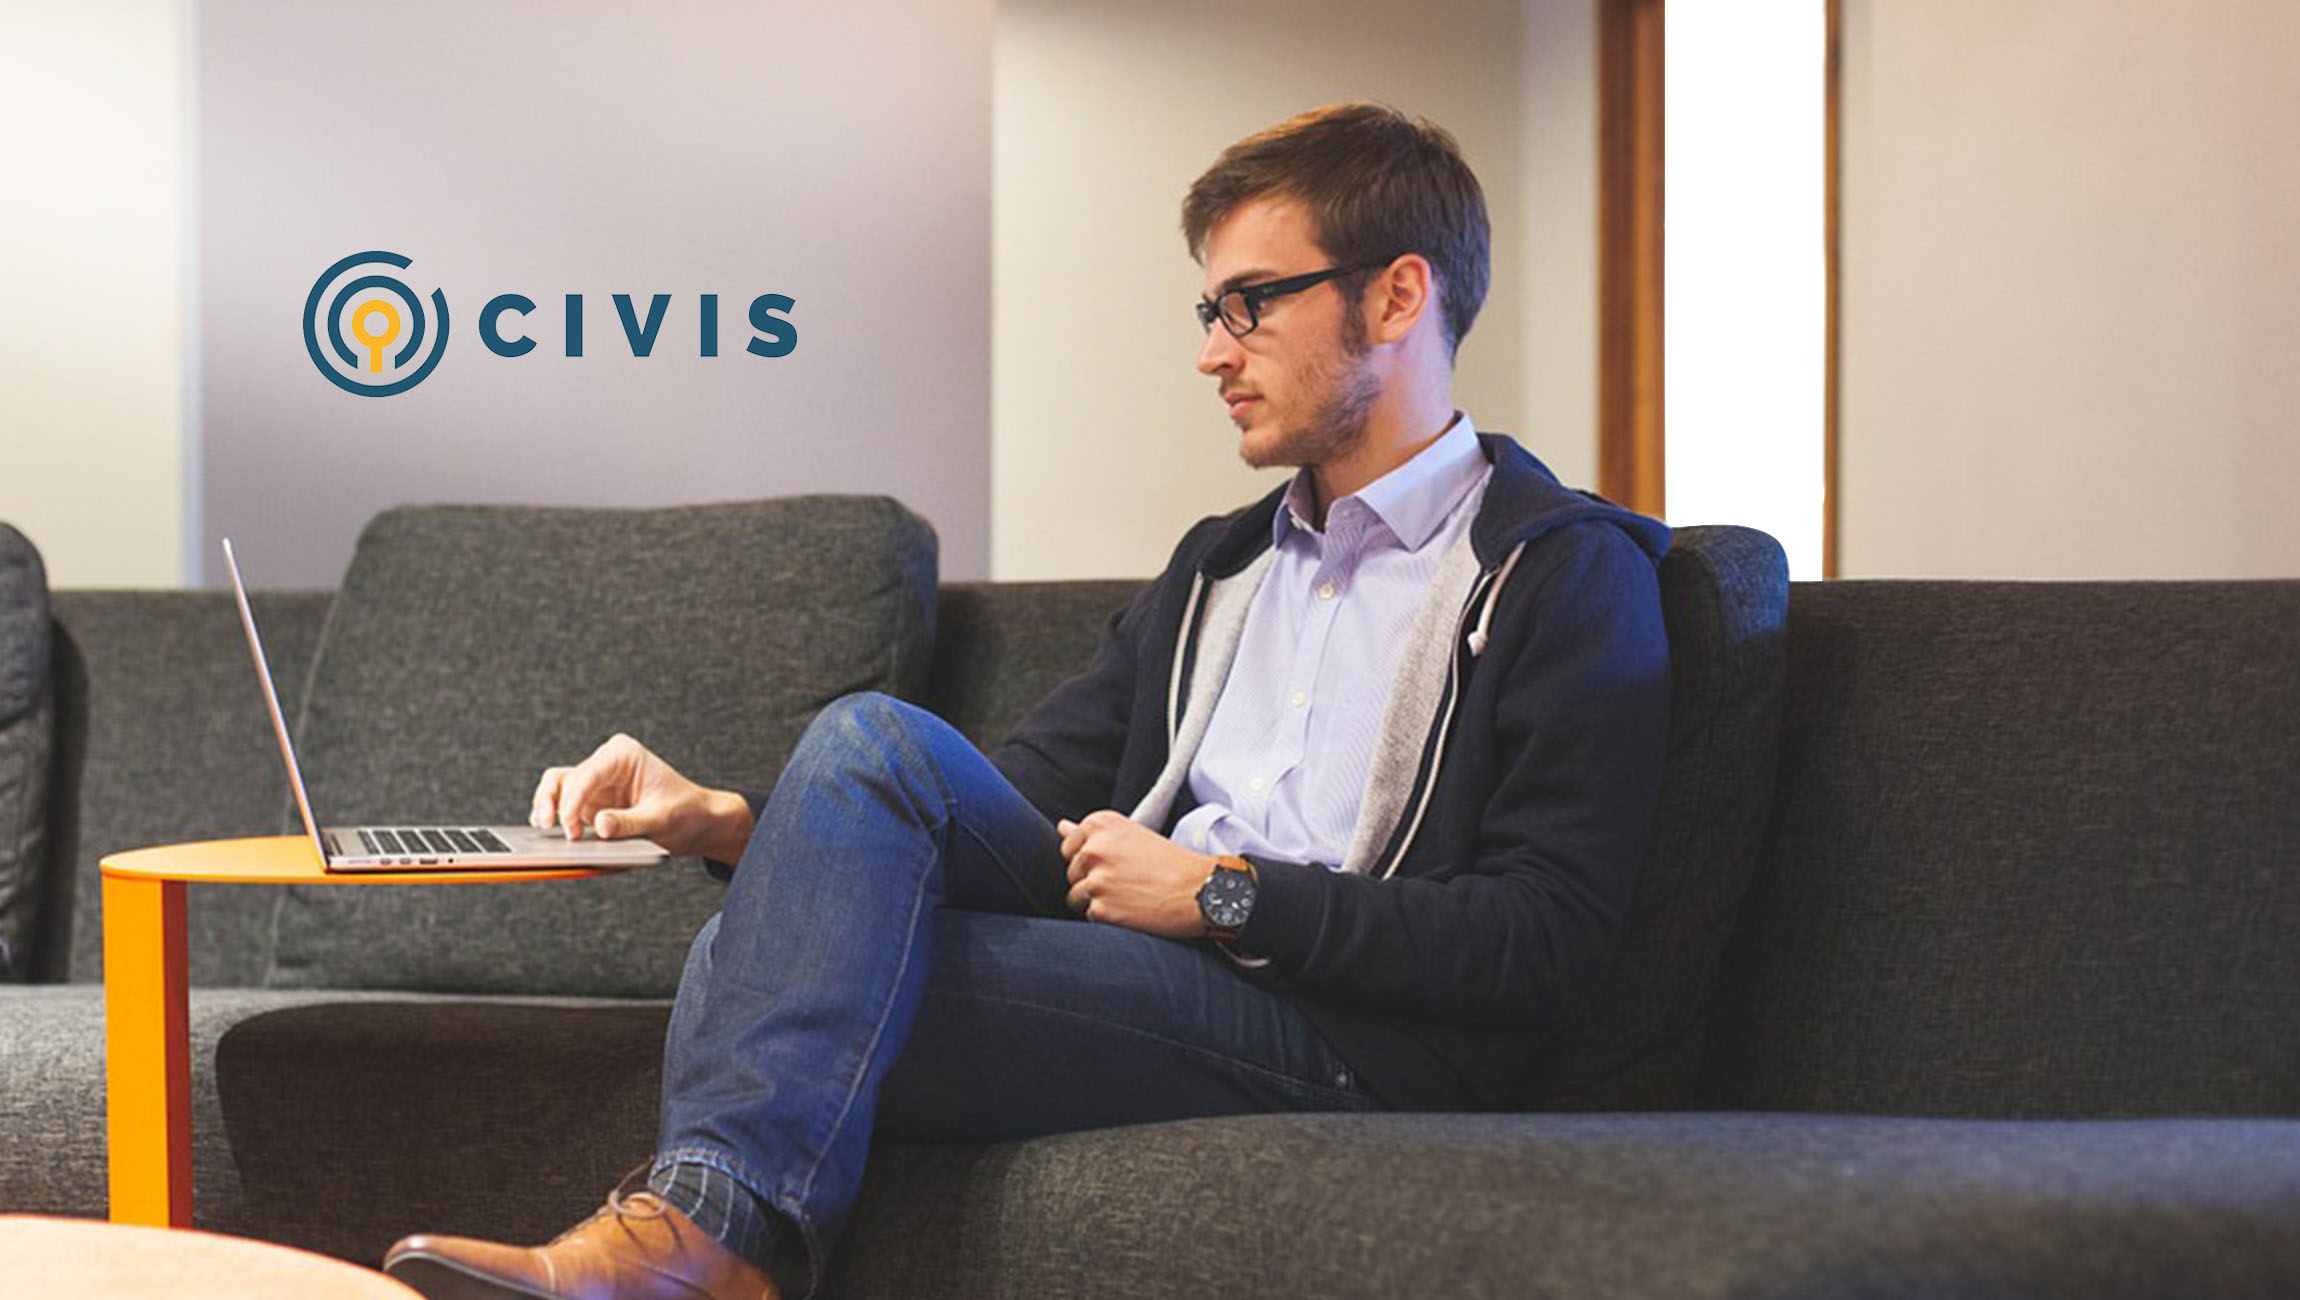 Creative Focus from Civis Analytics Allows Marketers to Identify Persuasion Effects of Messaging and Creative During the Planning Phase